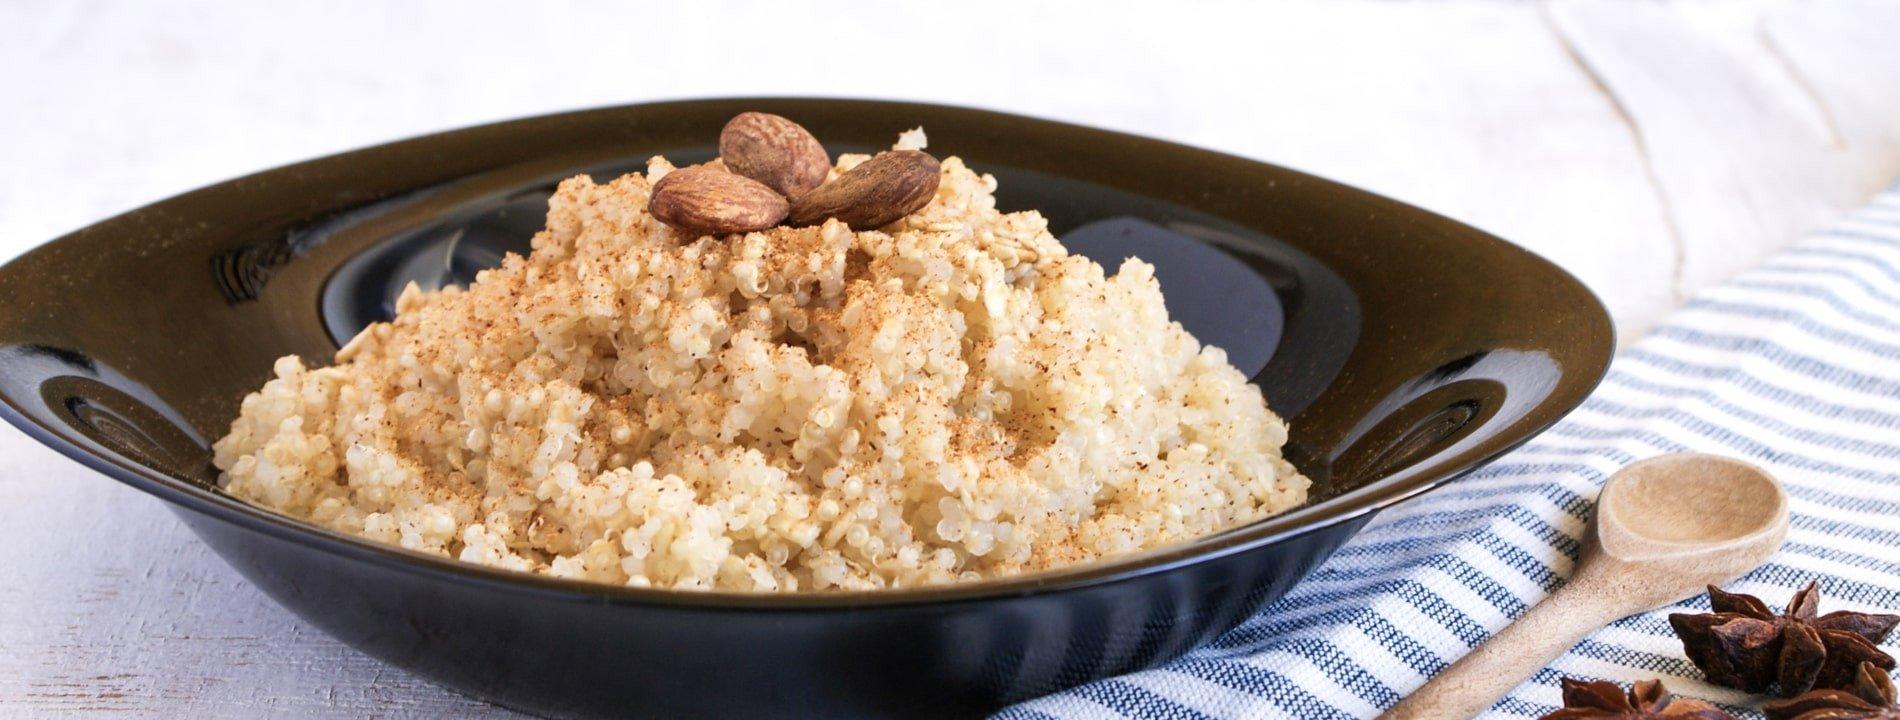 Quinoa, Oats and Spices